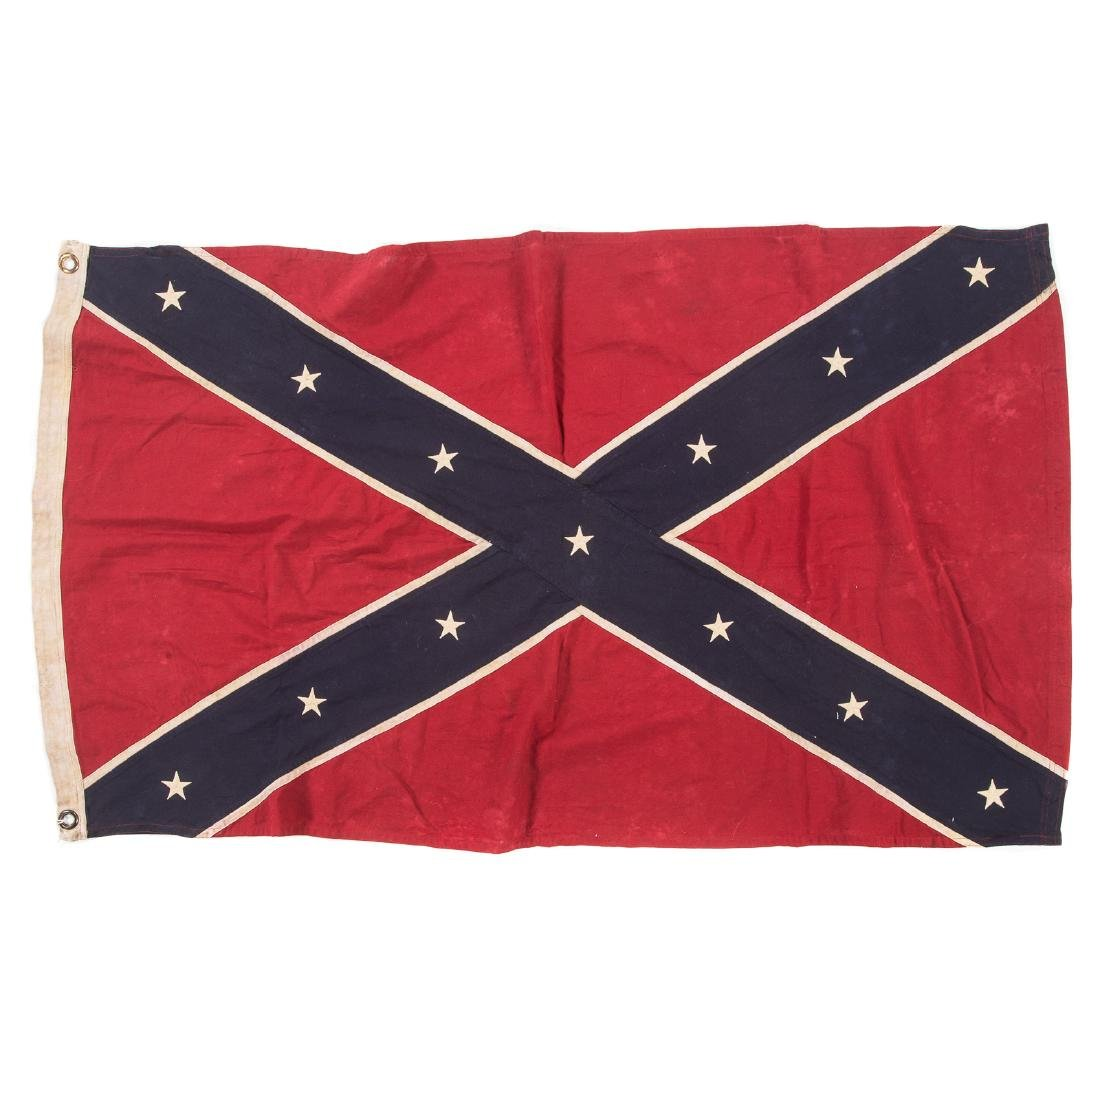 Confederate re-enactors battle flag